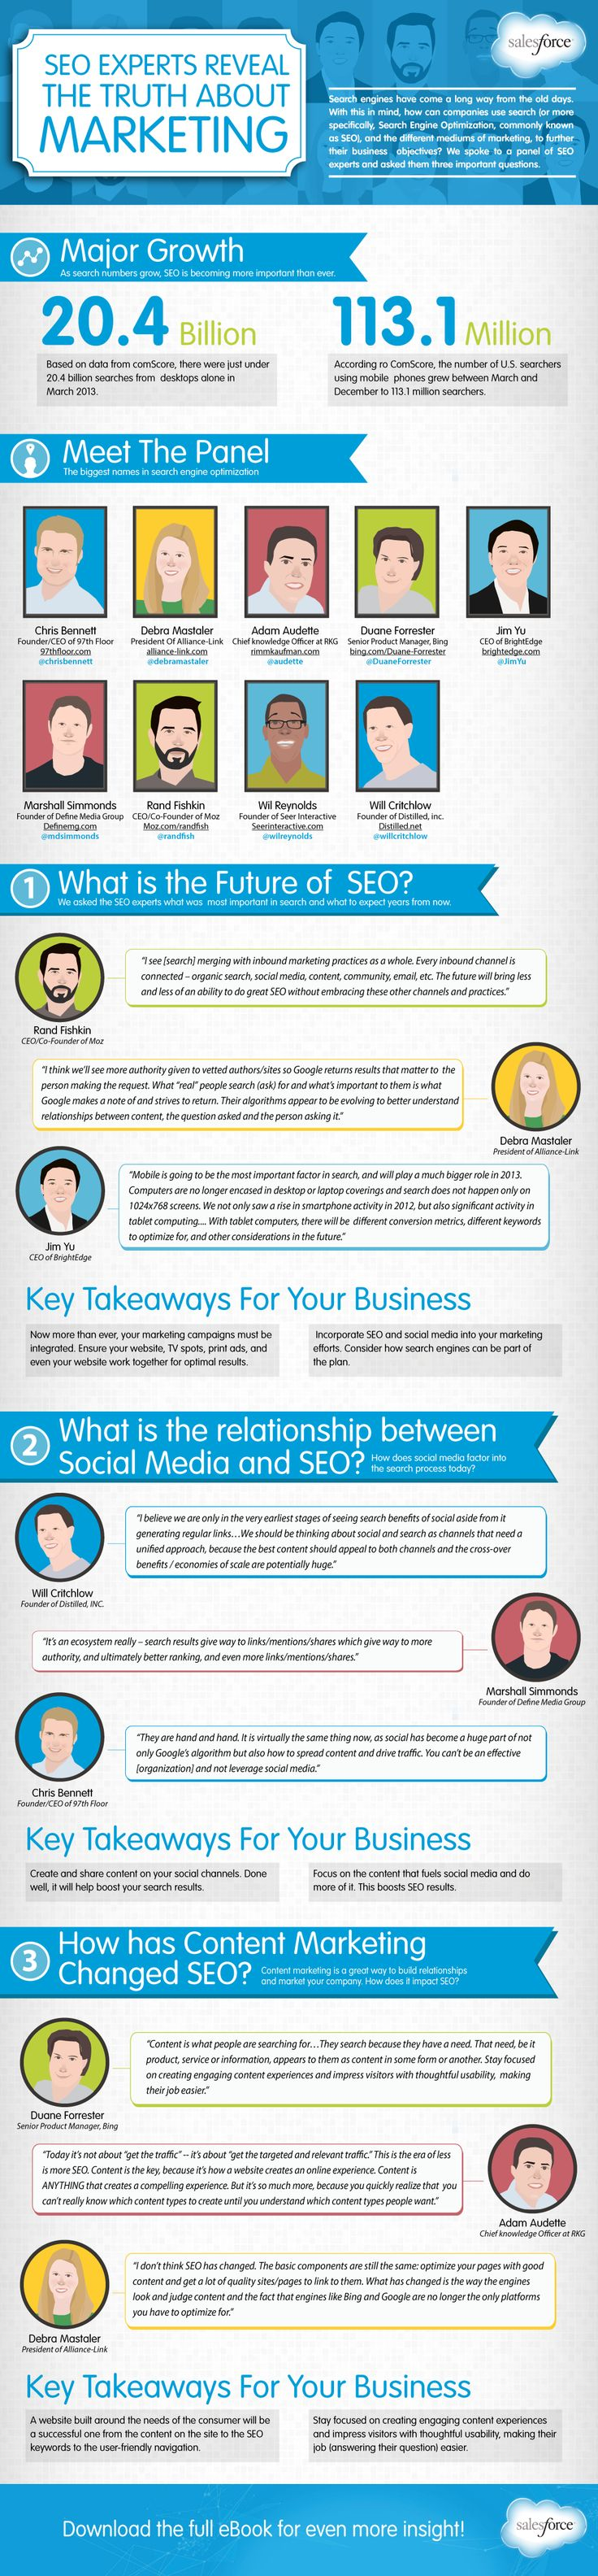 9 SEO Experts on the Future of Marketing   #infographic #marketing